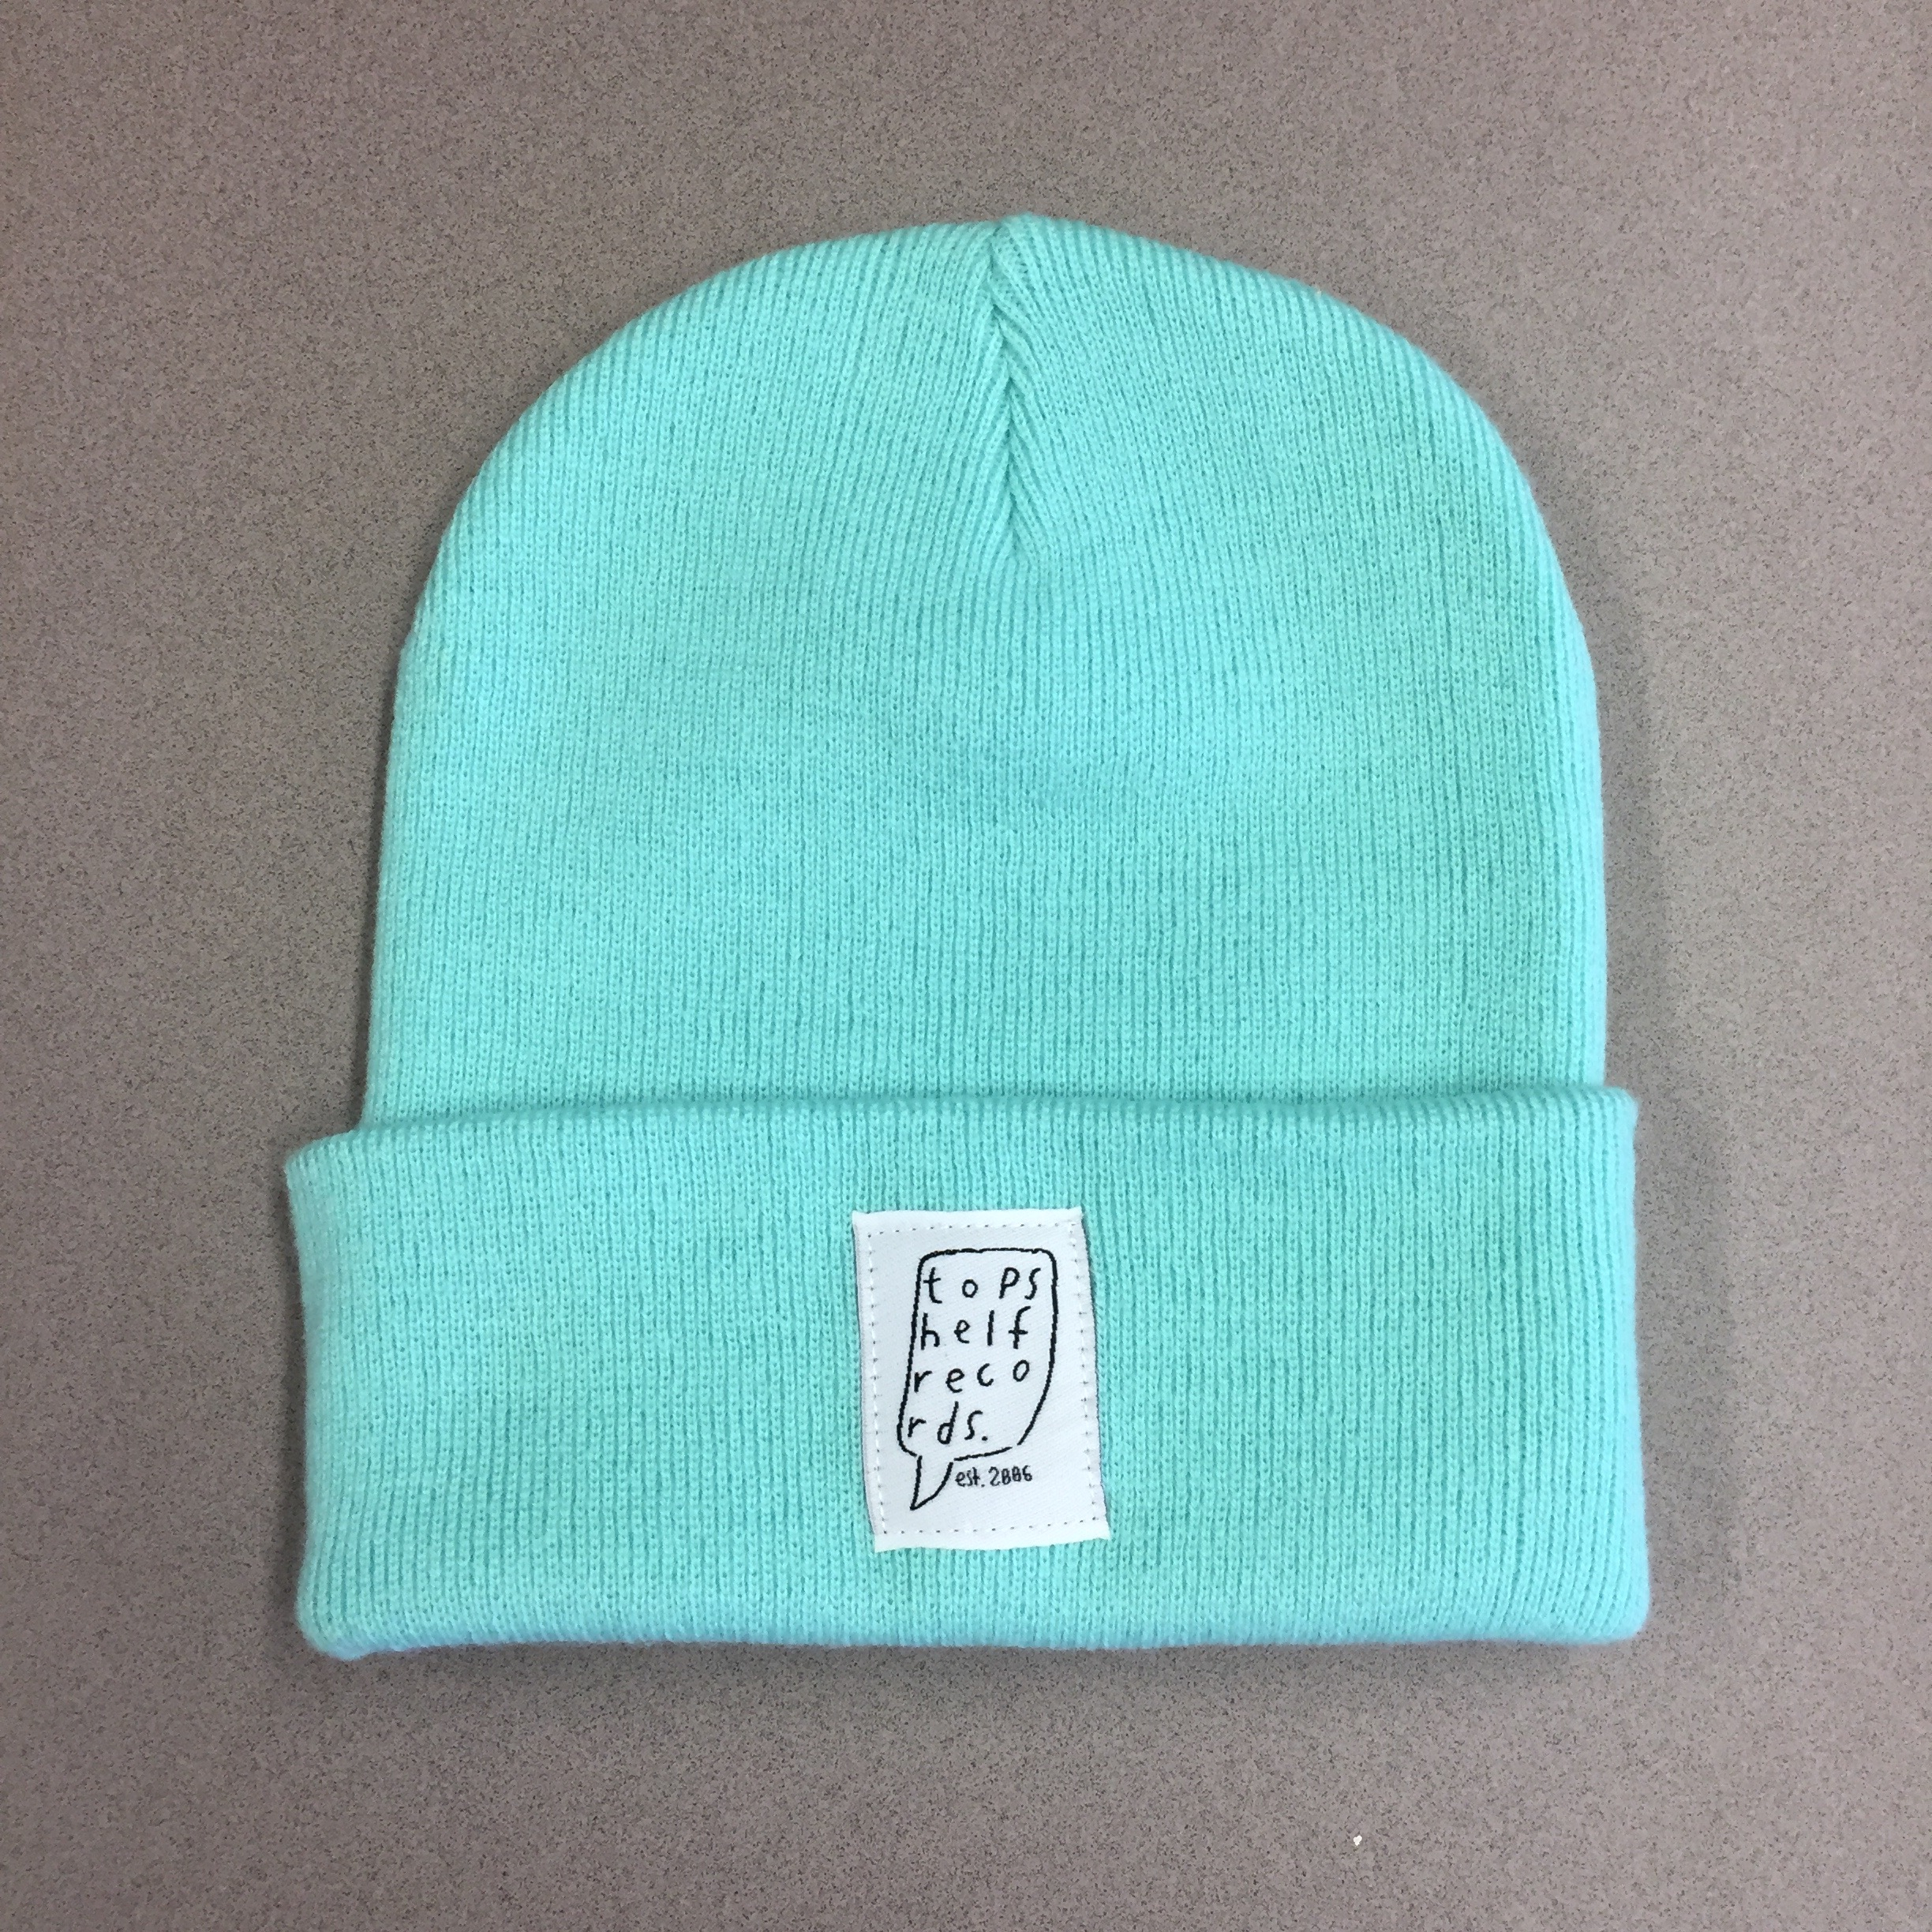 Topshelf Records - Mint Knit Hat with Sewn Label 7eac6eb900f